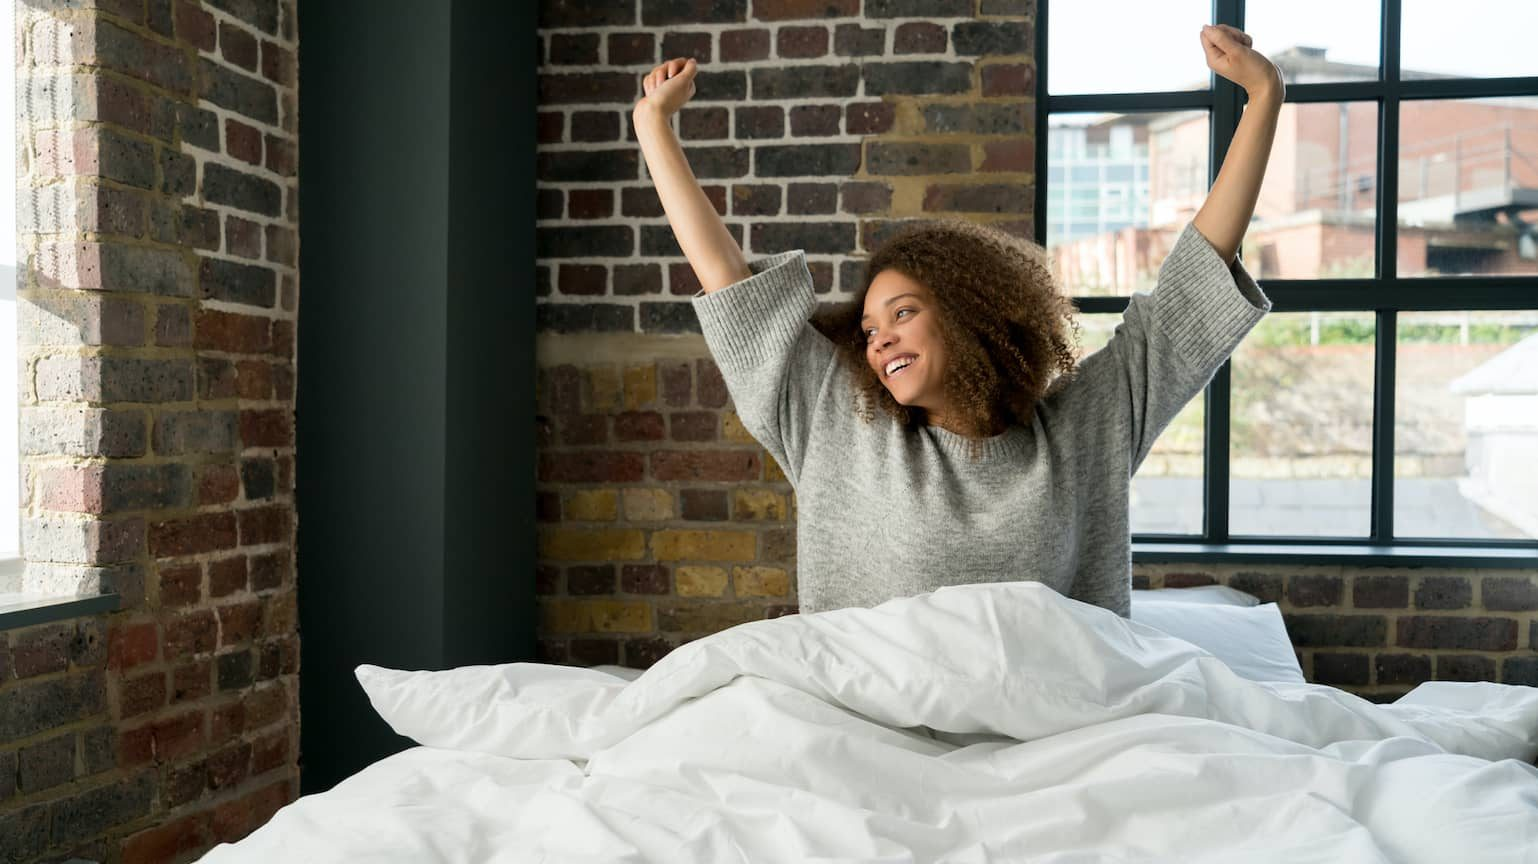 Woman waking up and stretching on a comfy mattress